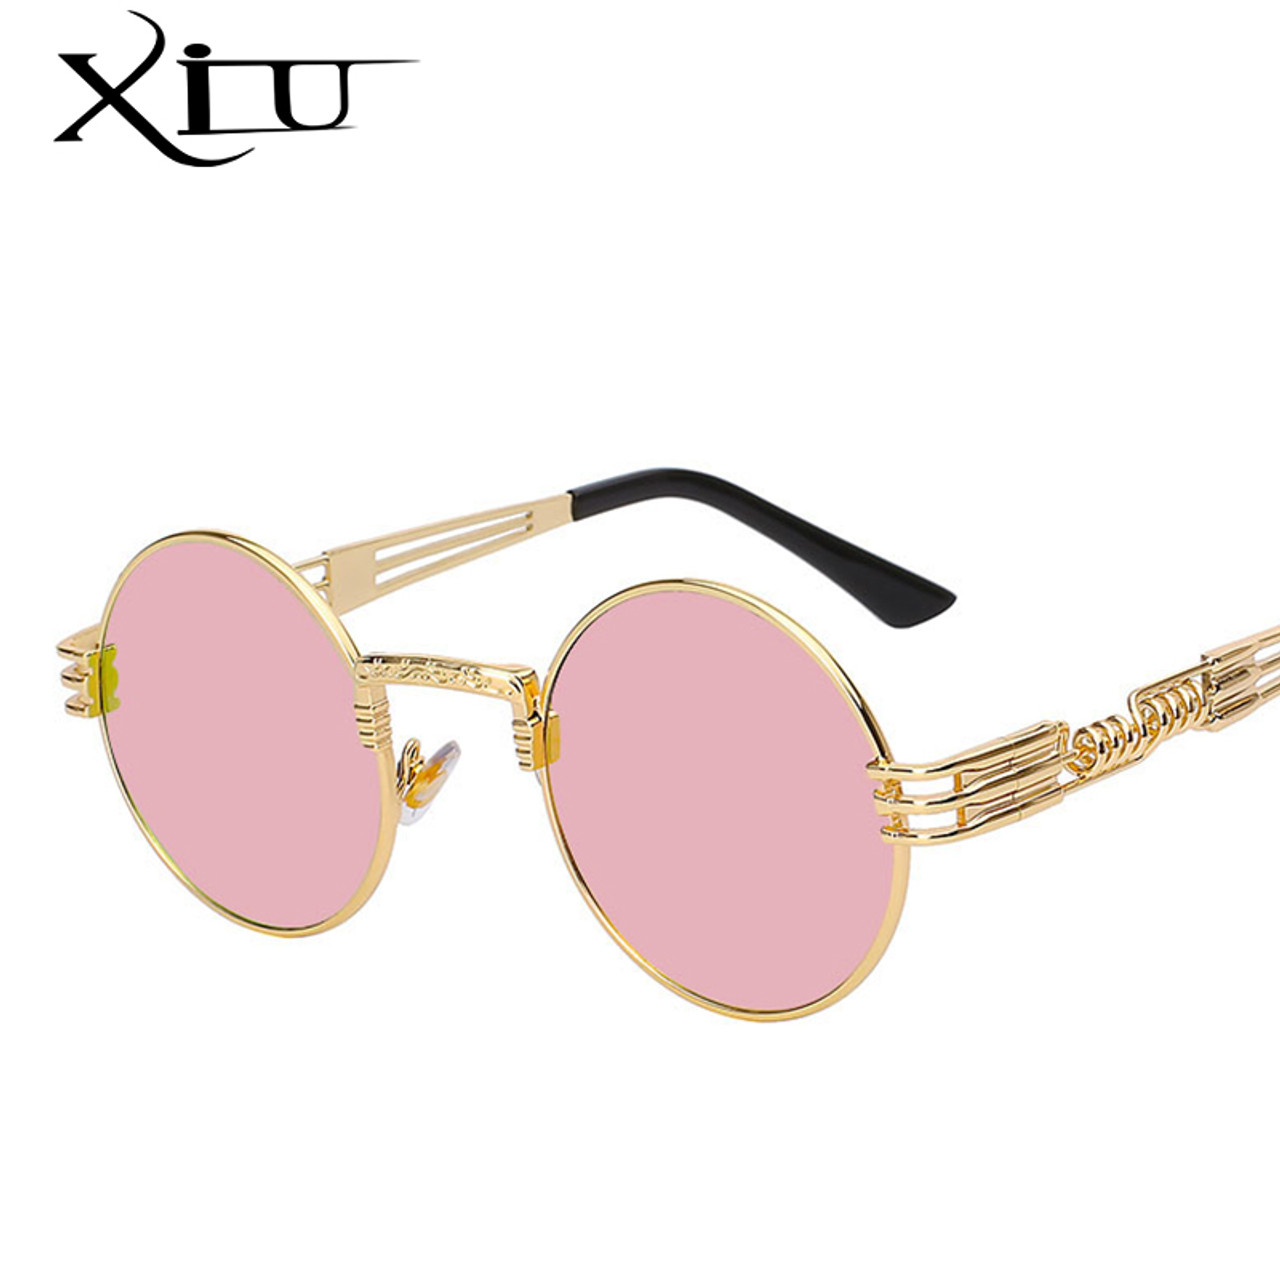 5011cc18a3 ... Gothic Steampunk Sunglasses Men Women Metal WrapEyeglasses Round Shades  Brand Designer Sun glasses Mirror High Quality ...